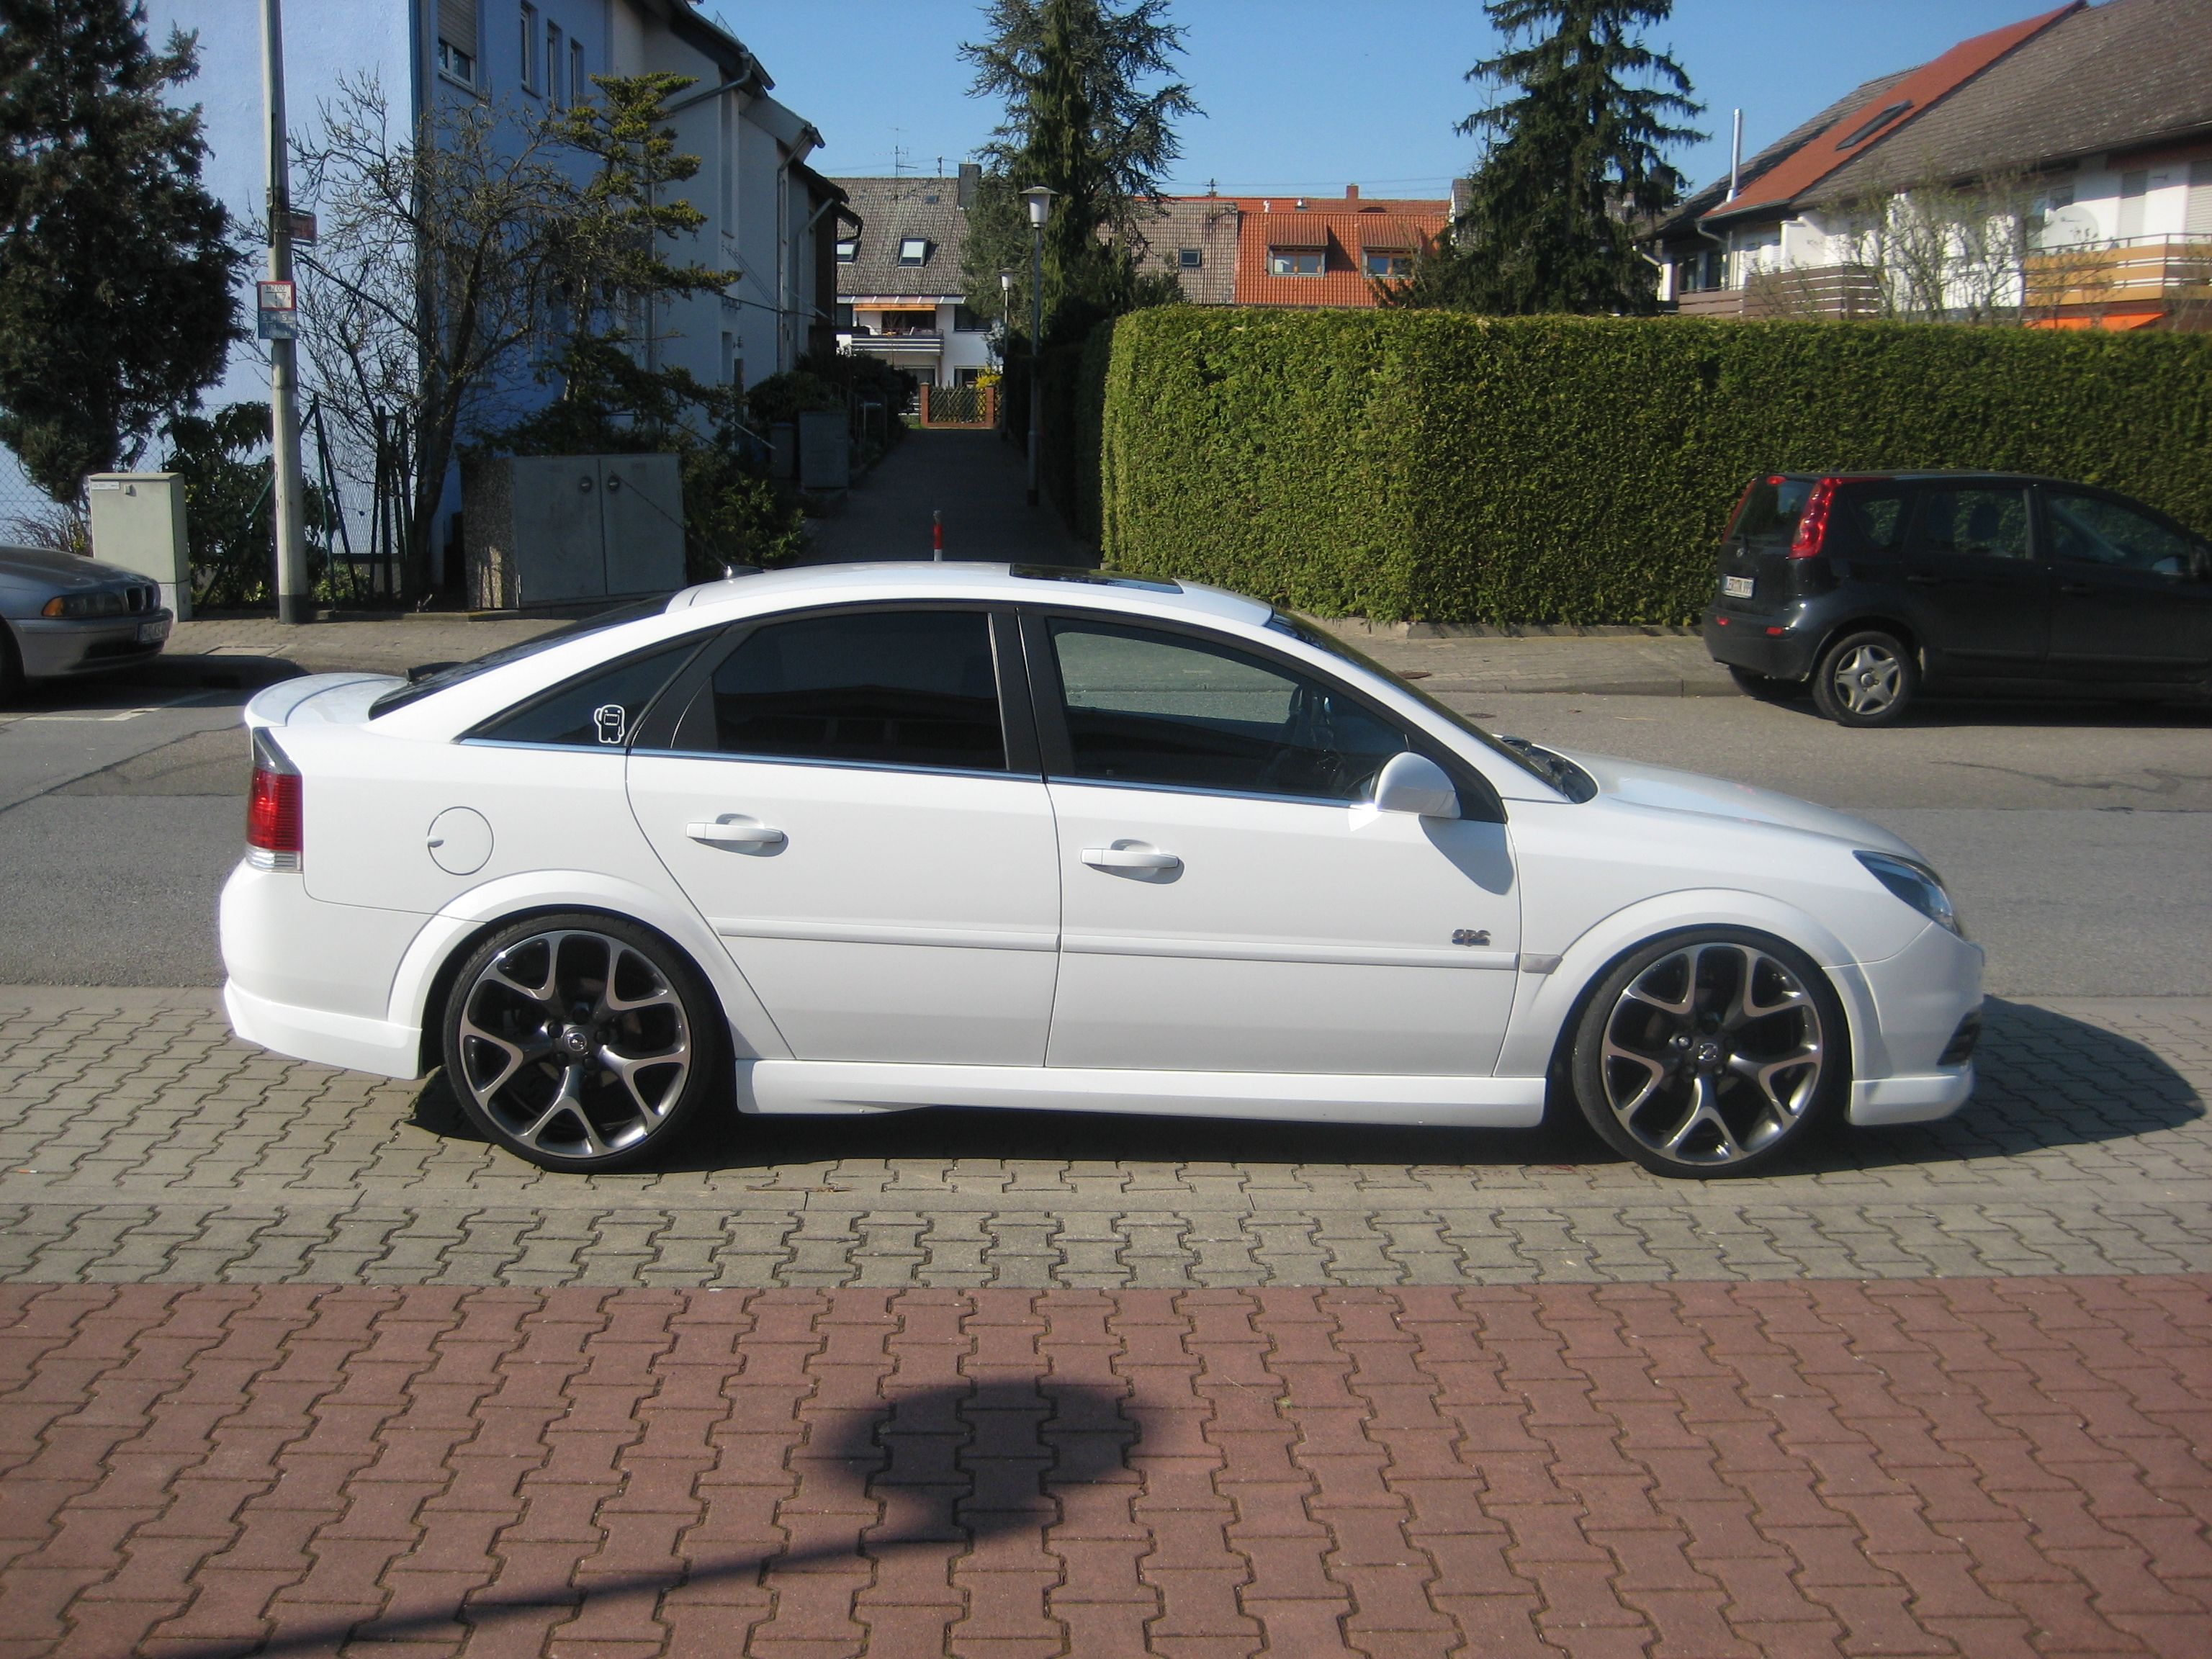 Pin By Lukas Kregel On Opel Vectra C Opc In 2020 Cars Cars And Motorcycles Vauxhall